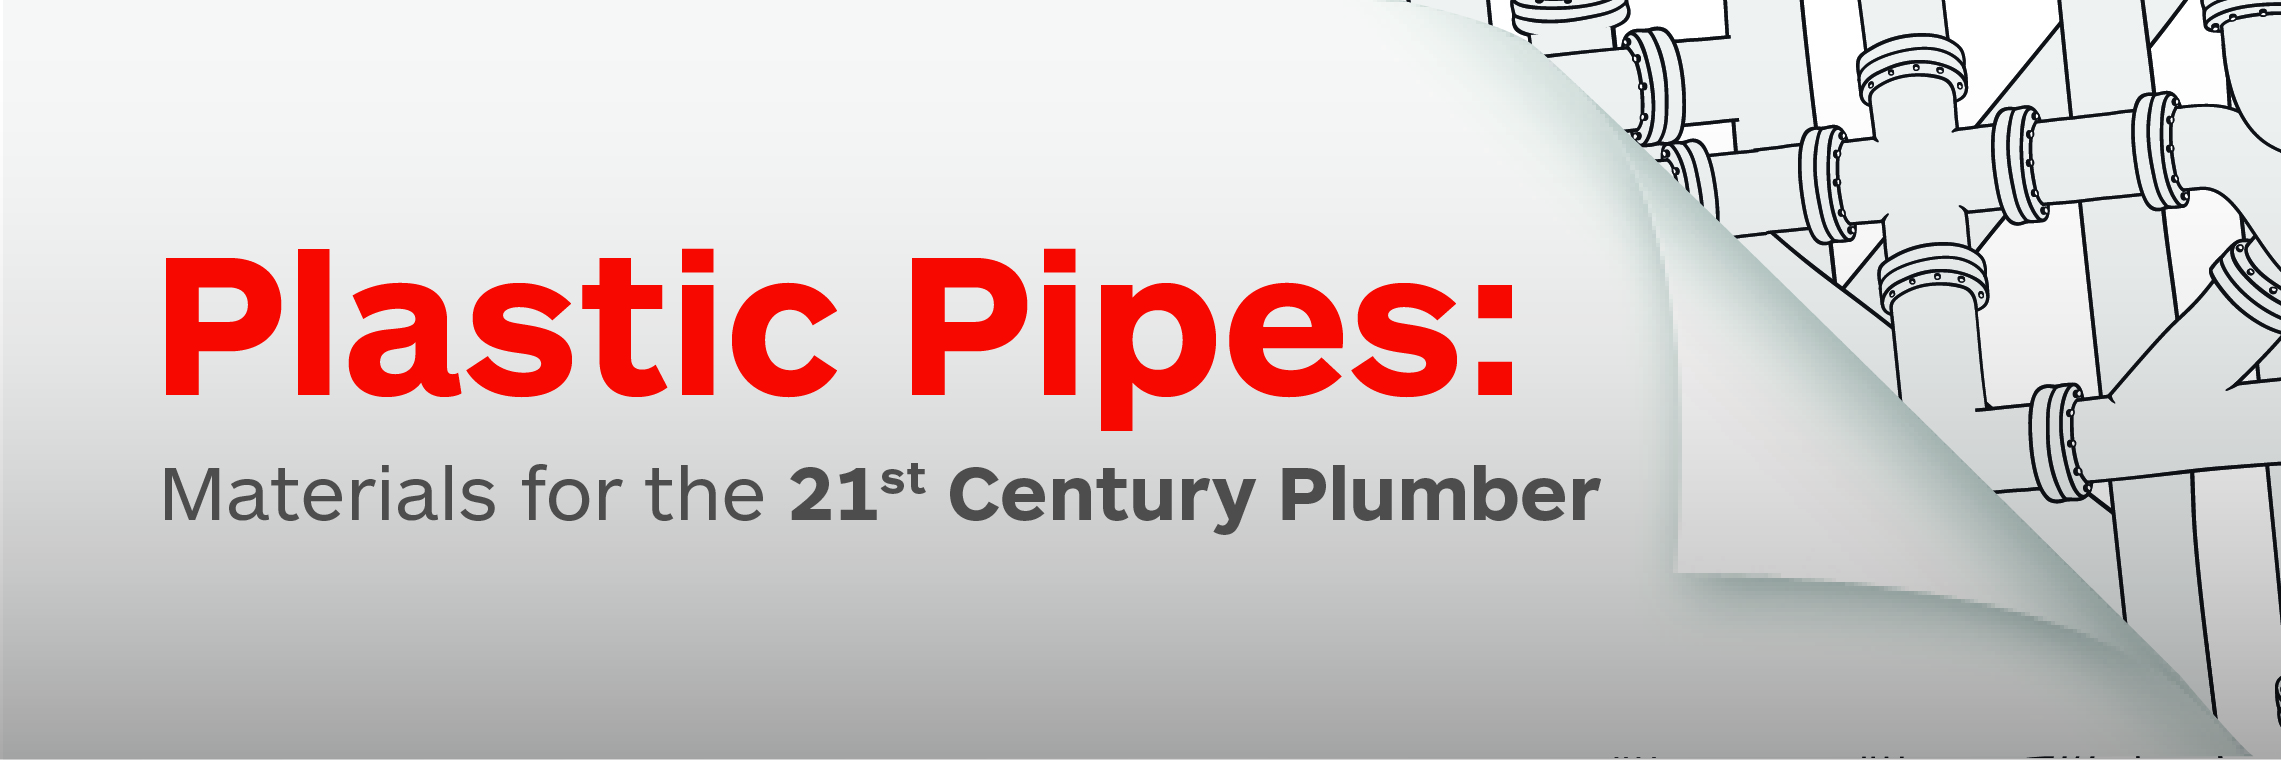 Plastic Pipes: Materials for the 21st Century Plumber